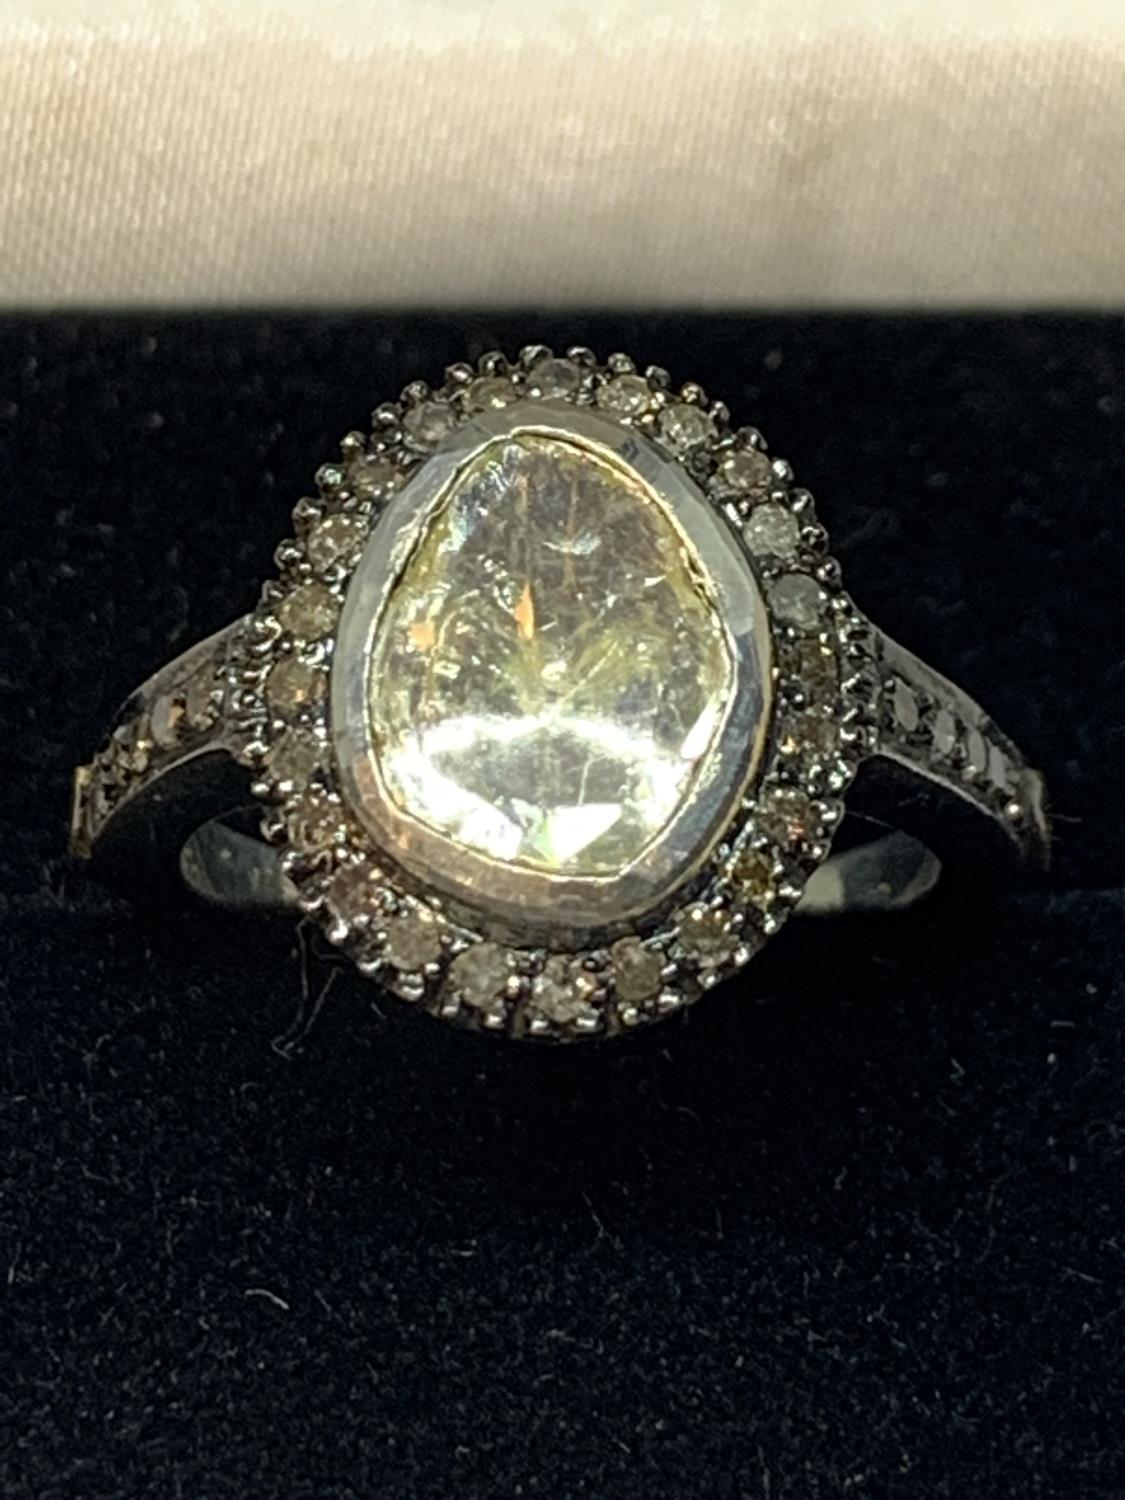 A CONTINENTAL WHITE AND YELLOW METAL RING WITH CENTRE DIAMOND AND SMALLER SURROUNDING DIAMONDS WHICH - Image 2 of 6